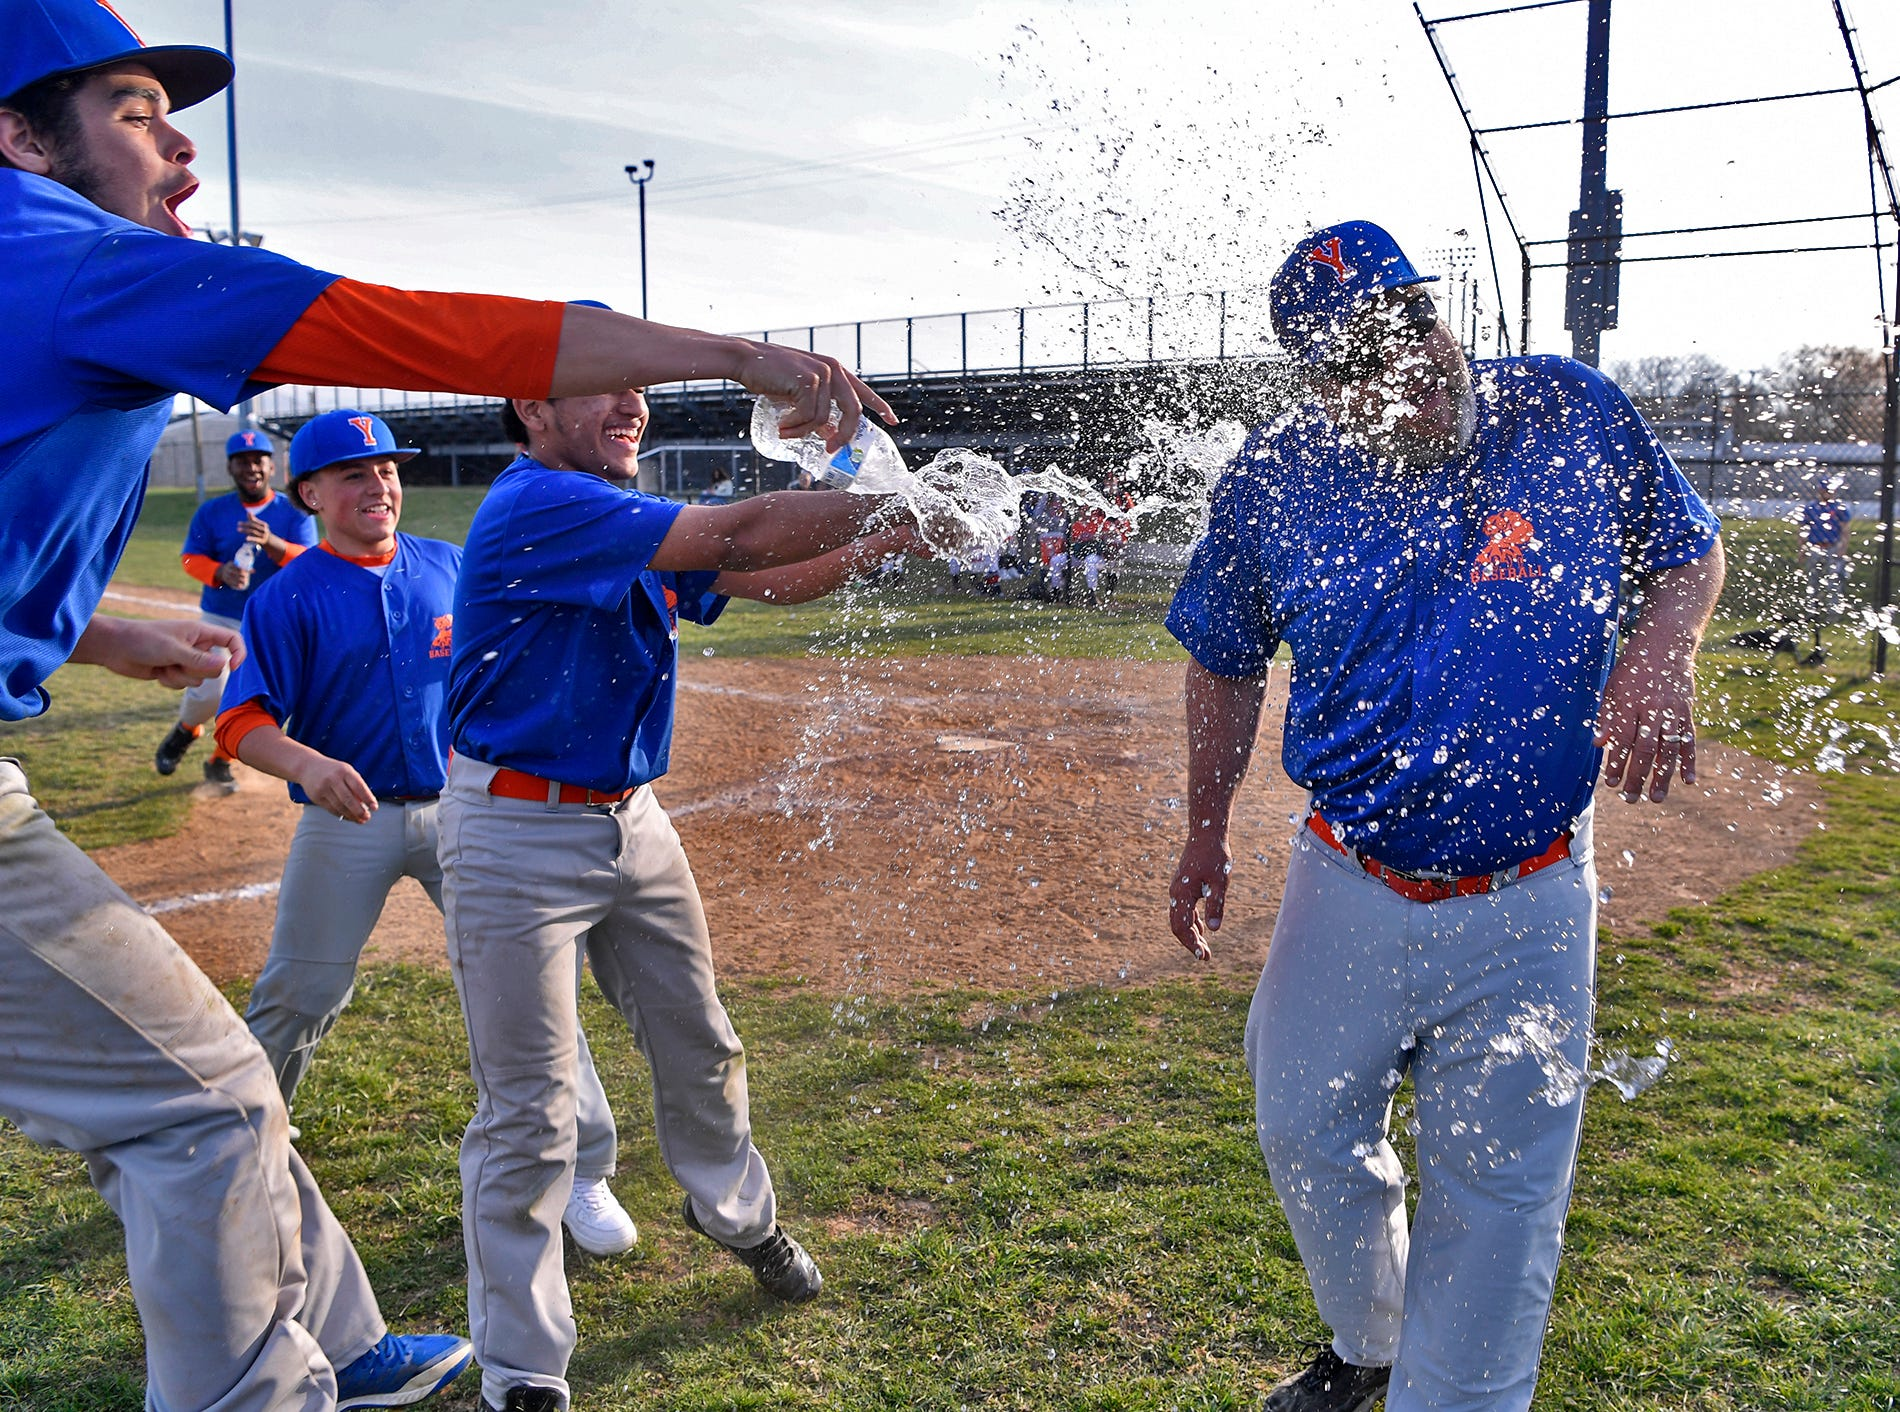 The Bearcats douse coach Dave Carr with water after winning their first game of the season, and the first since 2012, with a 8-4 win over Hanover, Thursday, April 4, 2019. John A. Pavoncello photo